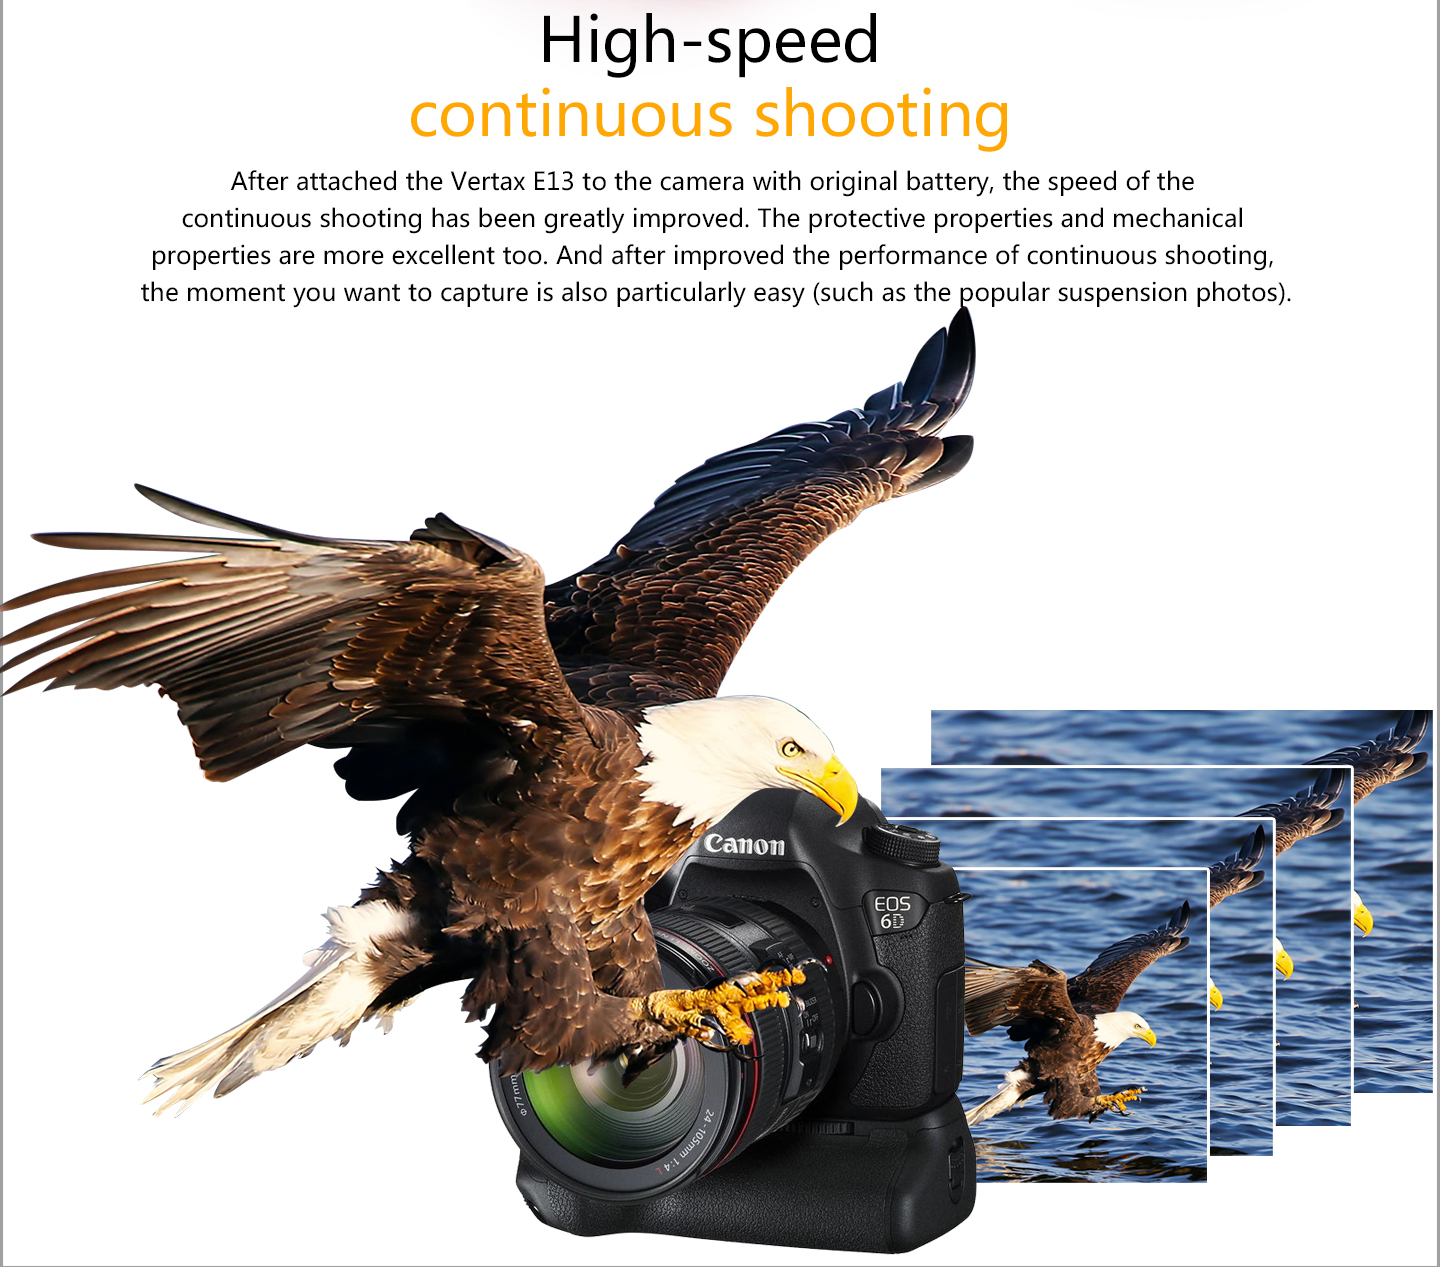 High-speed continuous shooting